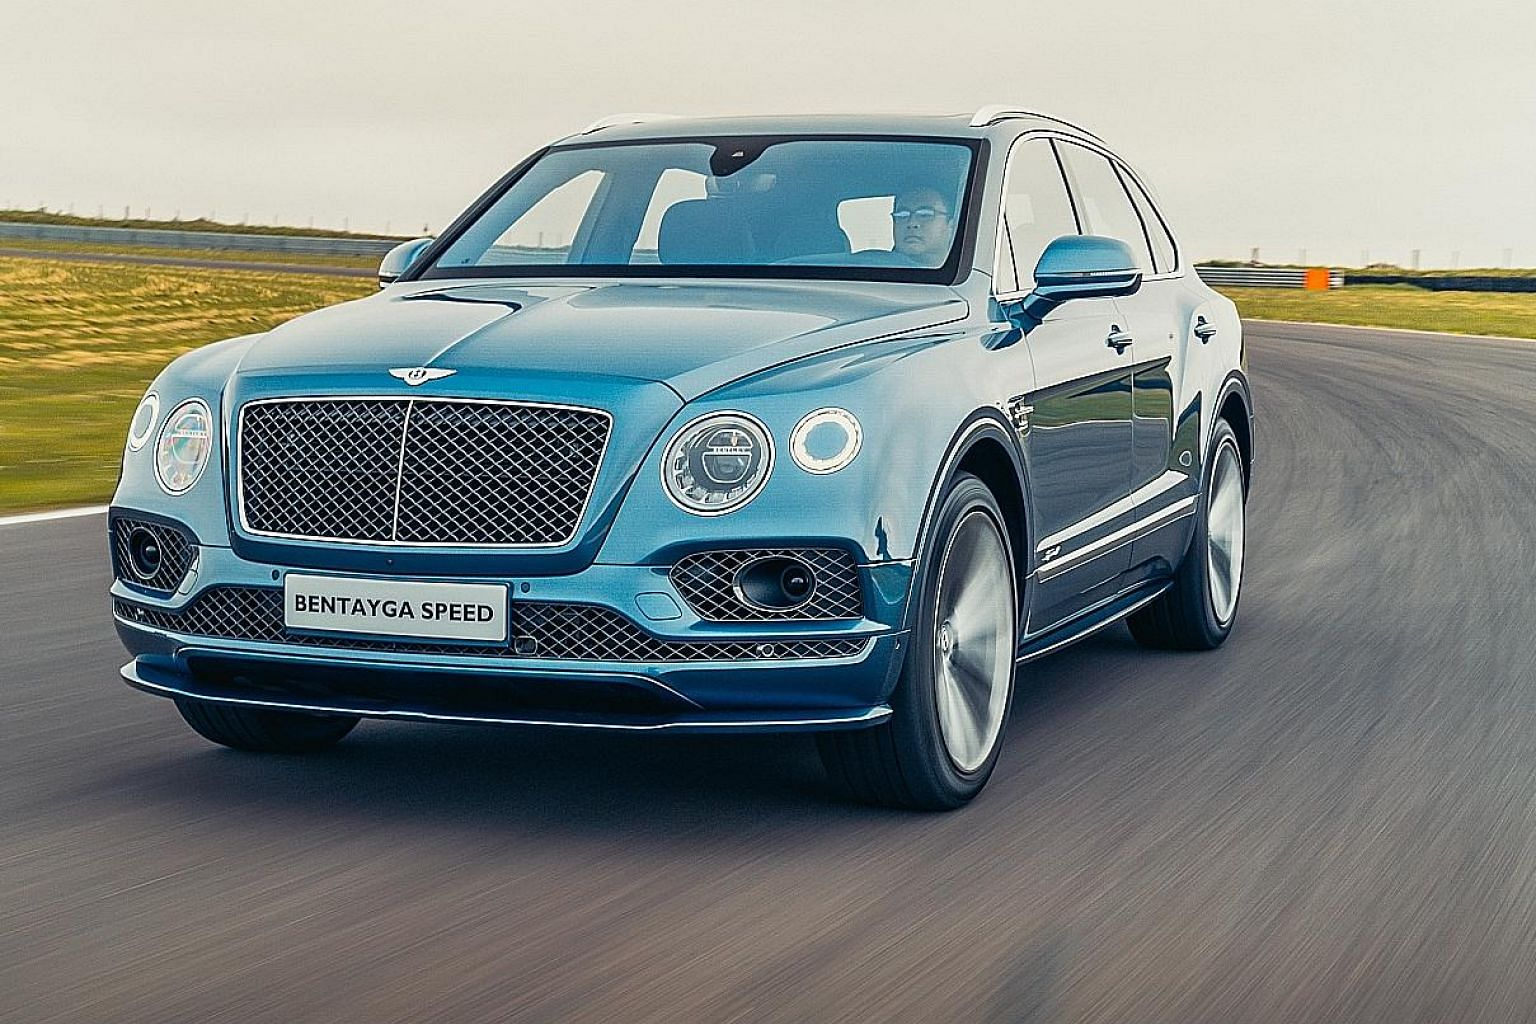 The Bentley Bentayga Speed is the world's fastest sport utility vehicle, pipping the Lamborghini Urus by 1kmh.